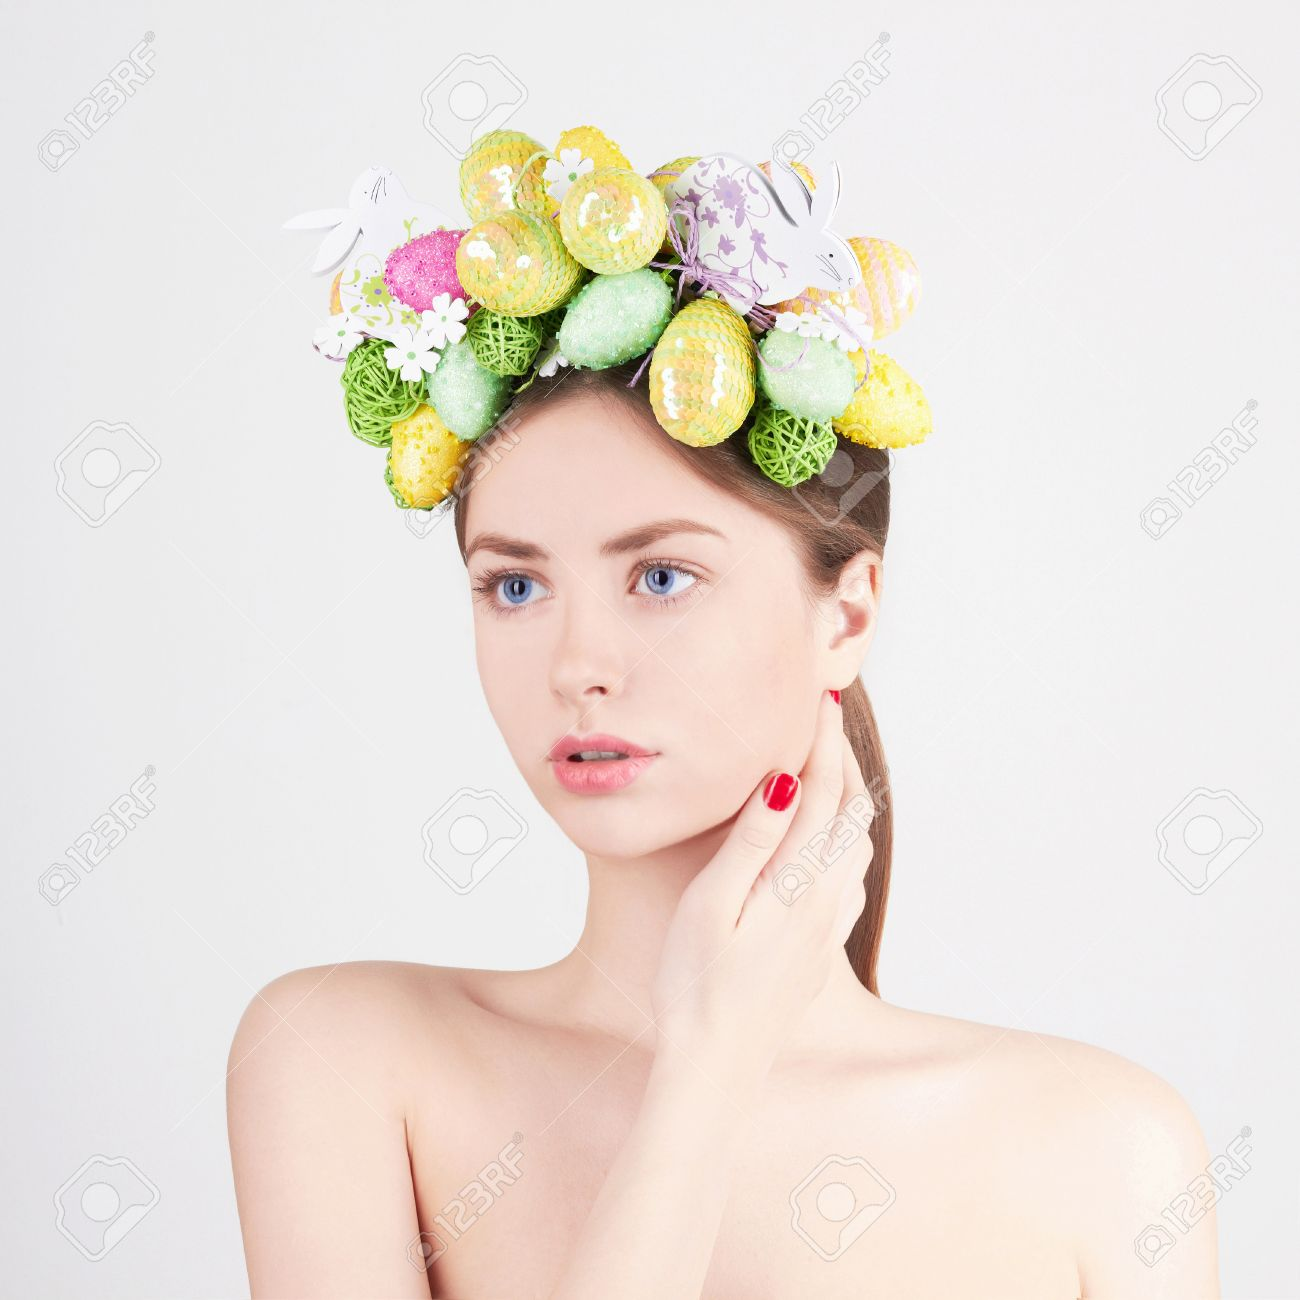 Beauty Model Girl With Colorful Eggs Holiday Easter Concept Stock Photo